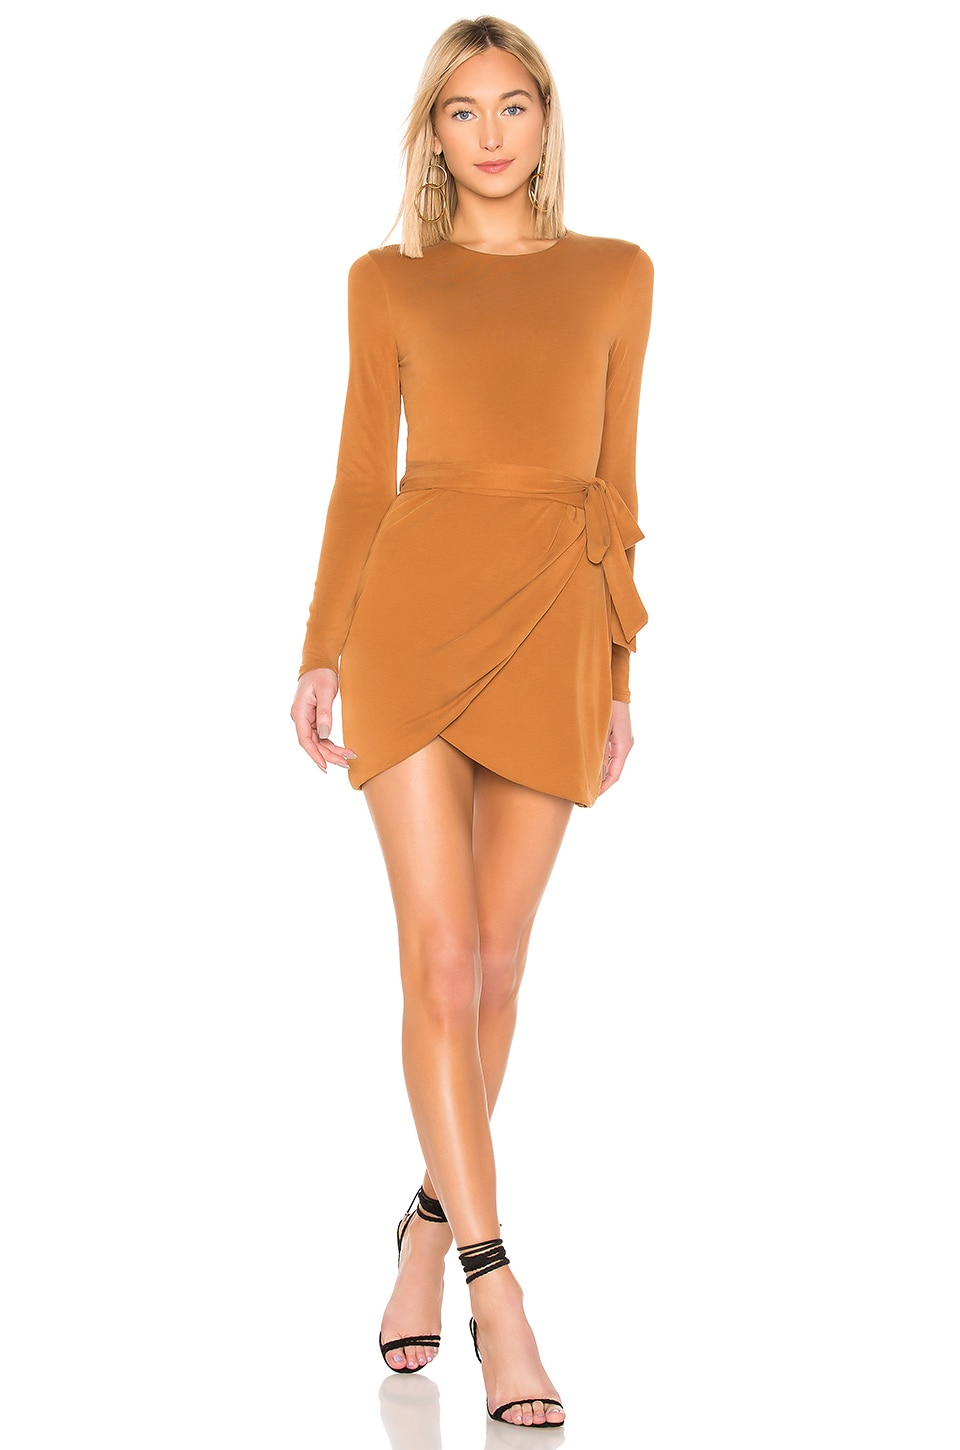 House of Harlow 1960 x REVOLVE Rya Long Sleeve Dress in Spice Brown